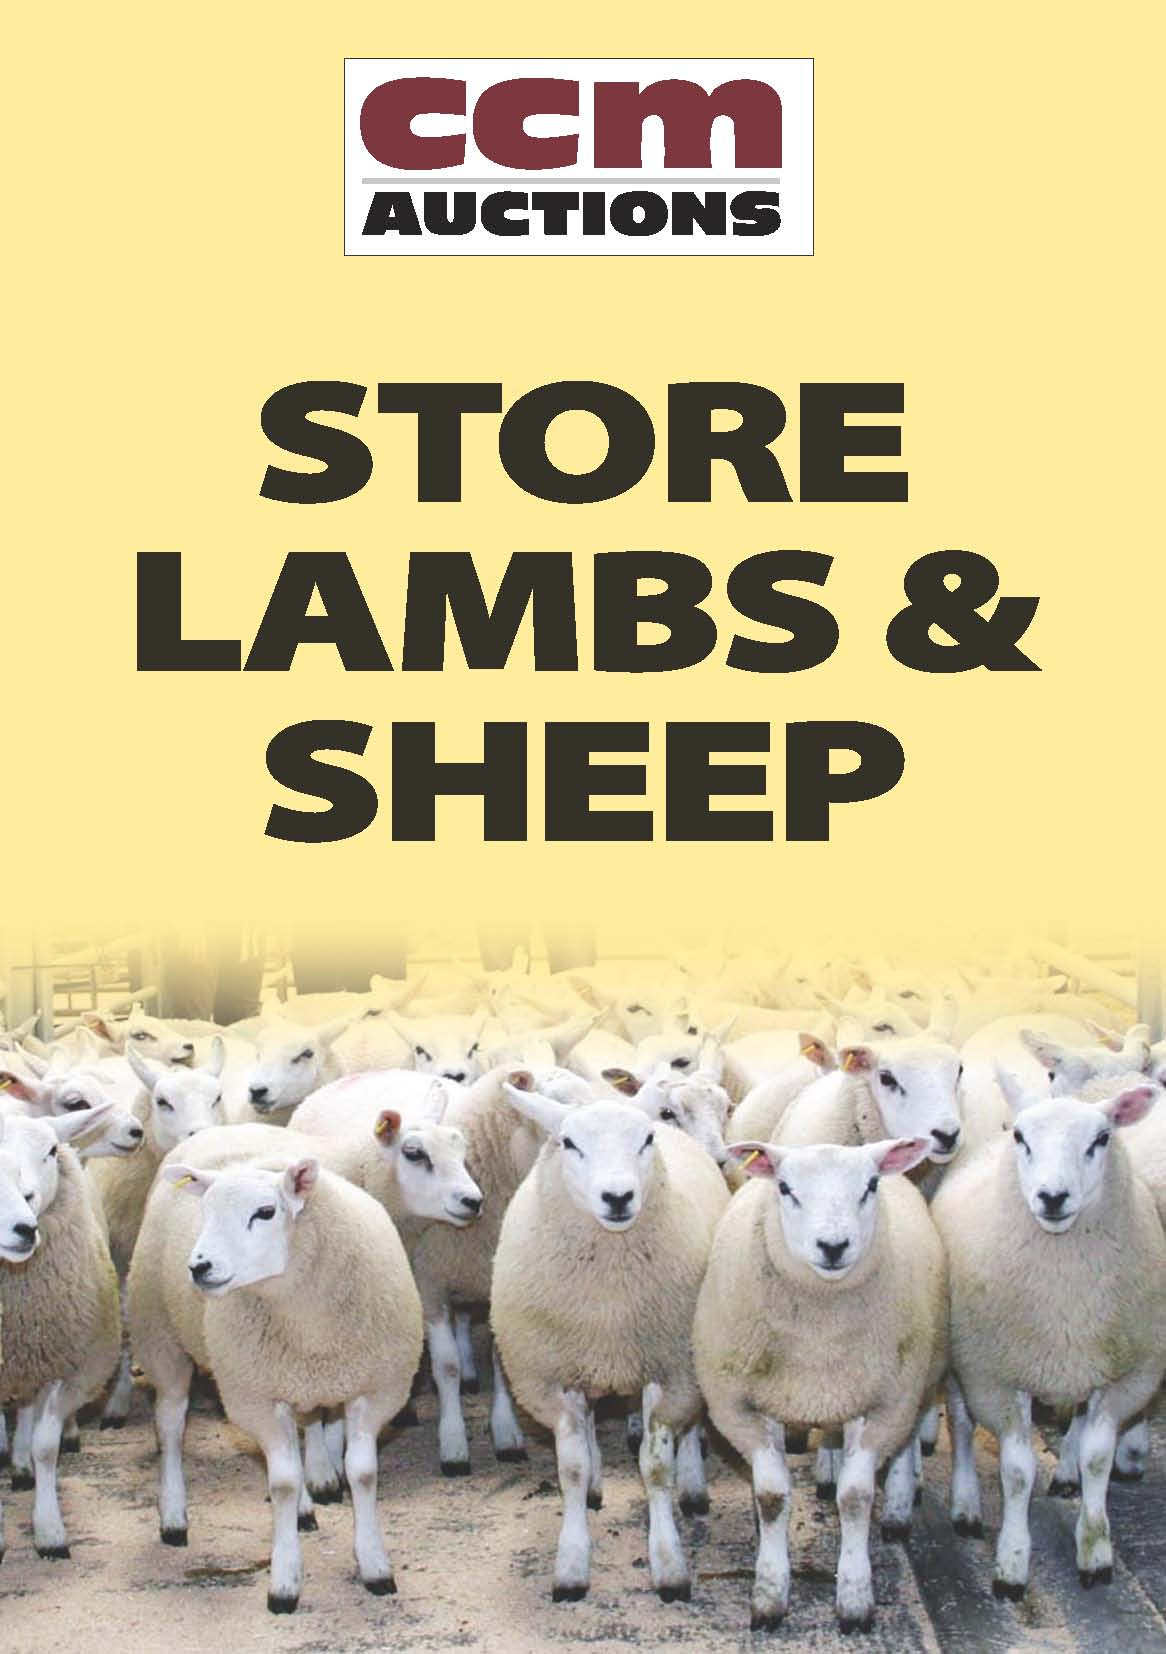 STORE LAMBS - WEDNESDAY 24TH AUGUST 2016